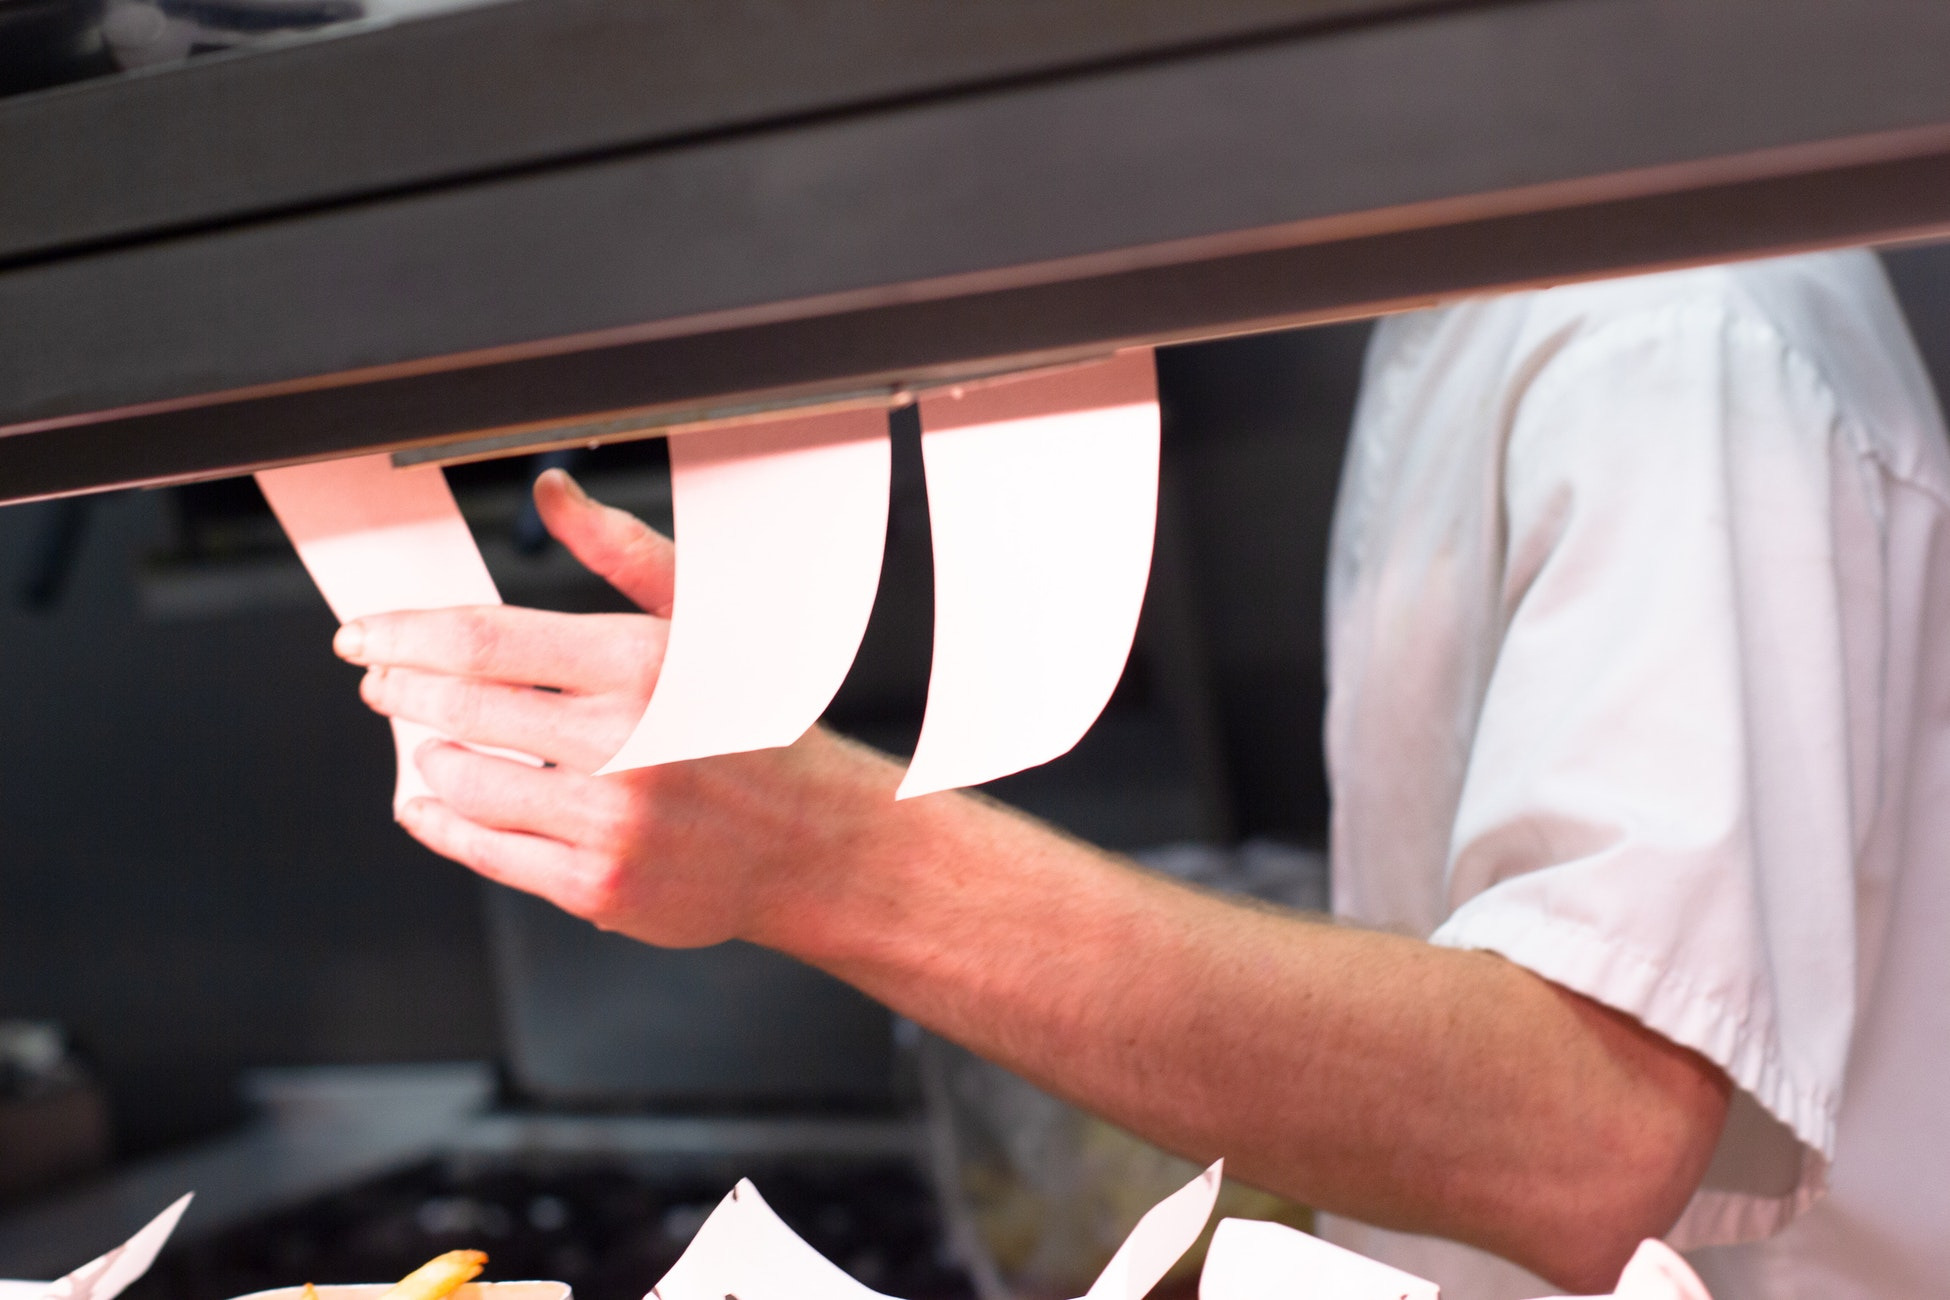 3 Reasons to Integrate Order Management Software | Restaurant online ordering software